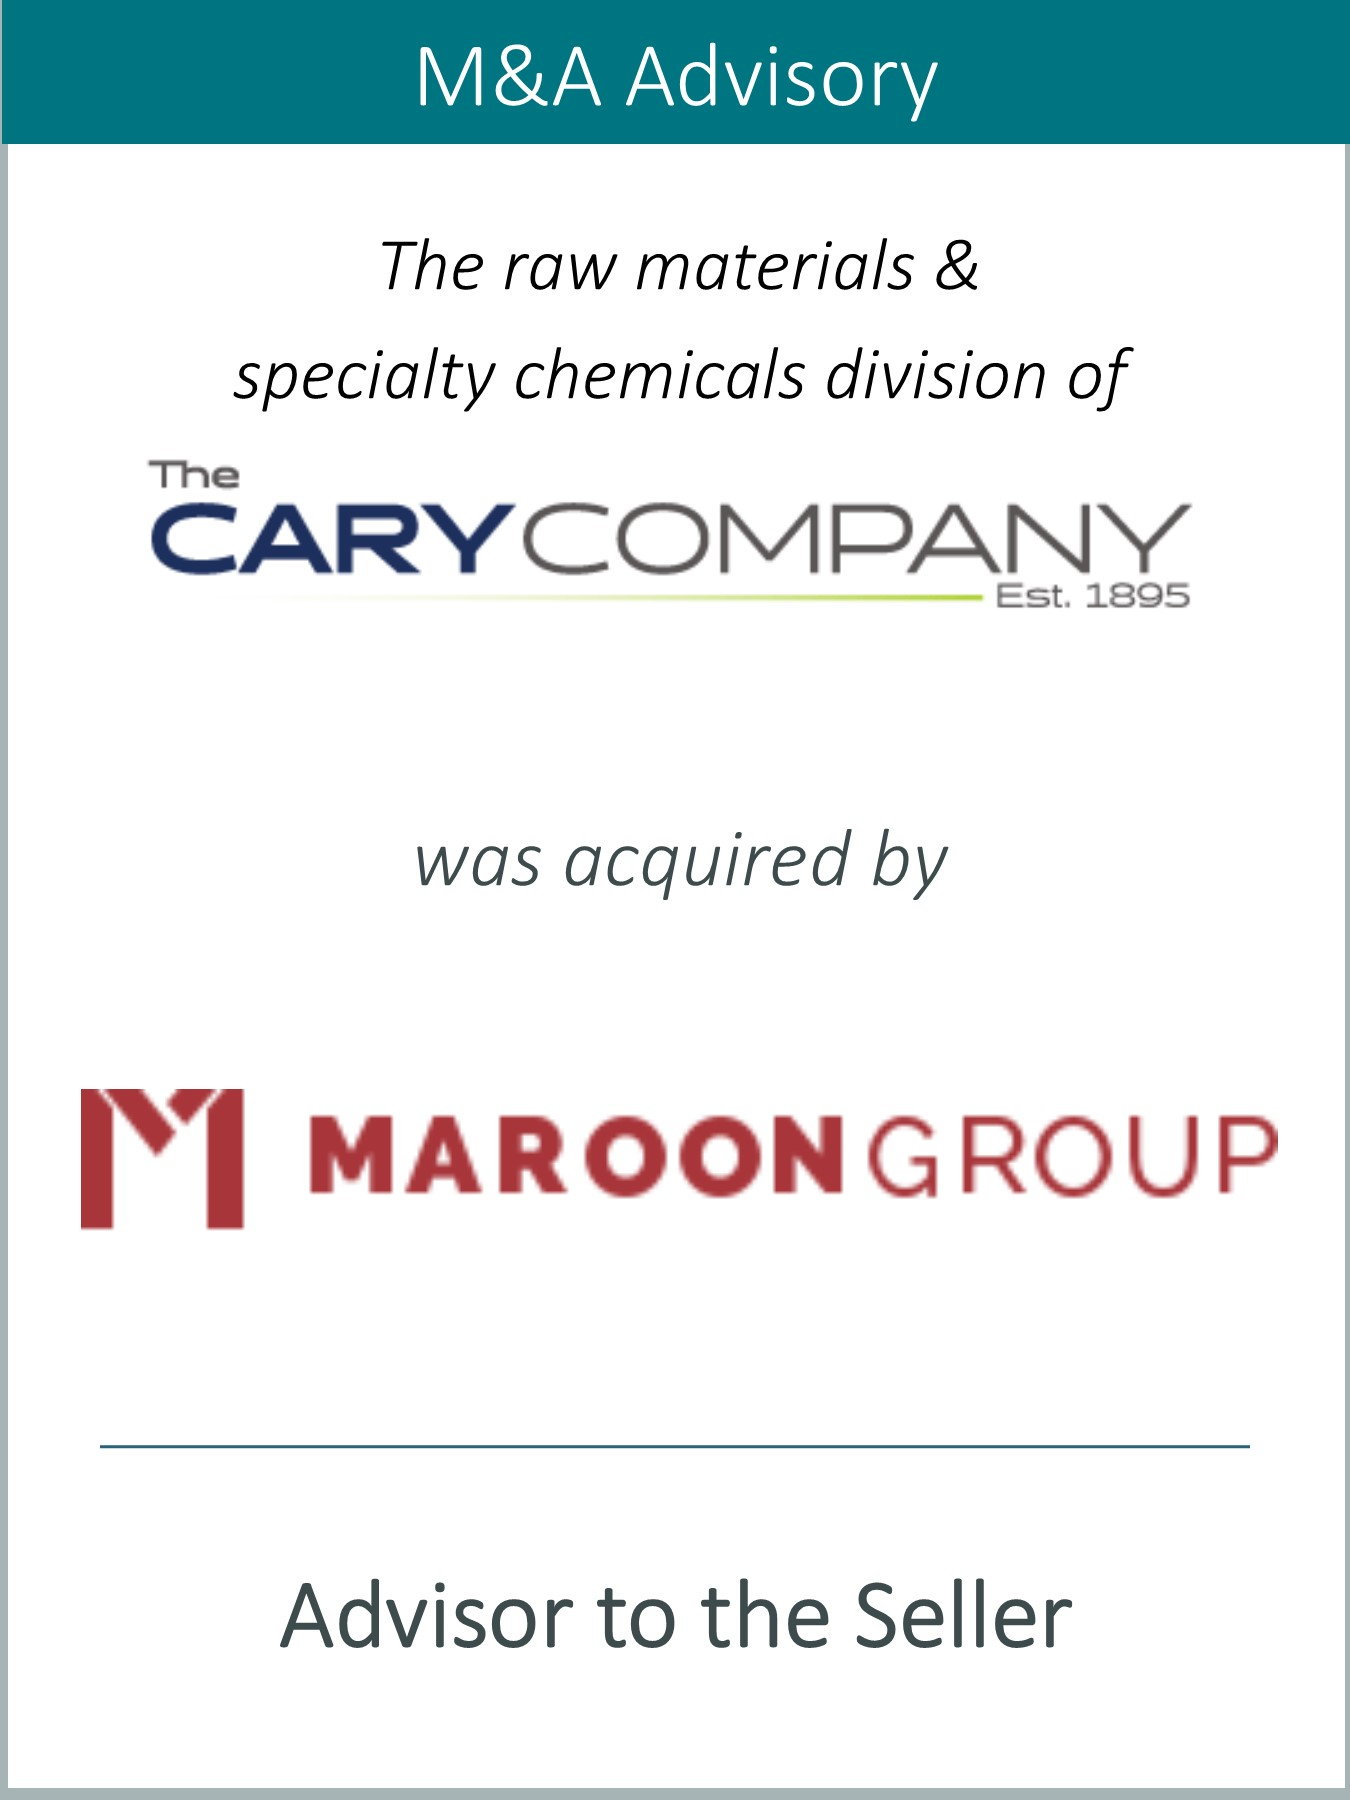 Prairie Represents the Raw Materials & Specialty Chemicals Division of The Cary Company in its Sale to Maroon Group LLC